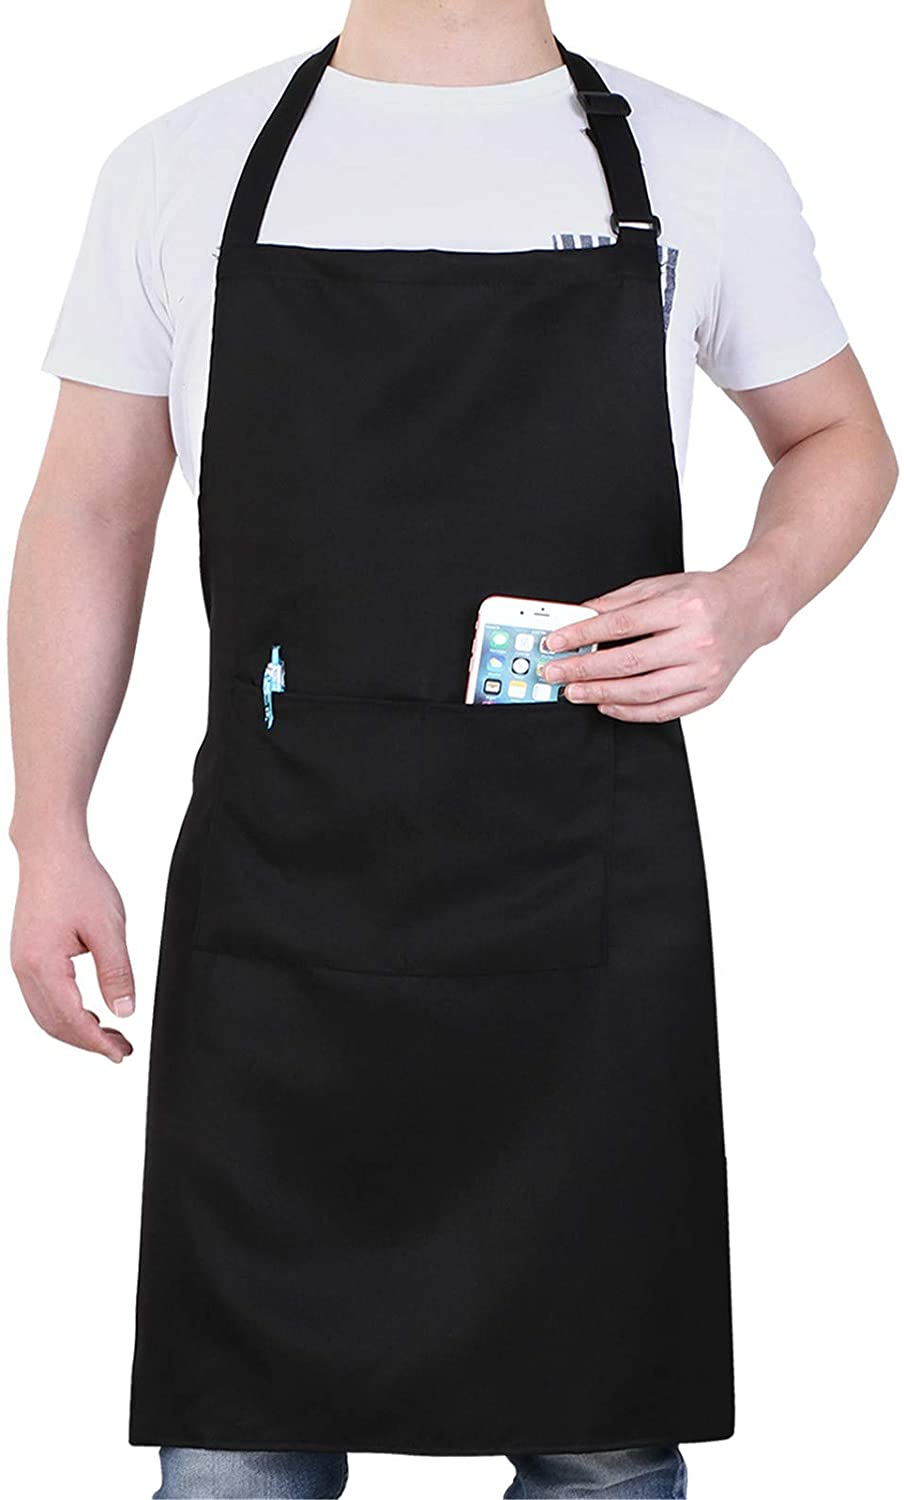 Will Well Adjustable Bib Aprons, Water Oil Stain Resistant Black Chef Cooking Kitchen Aprons with Pockets for Men Women (1 Pack): Kitchen & Dining